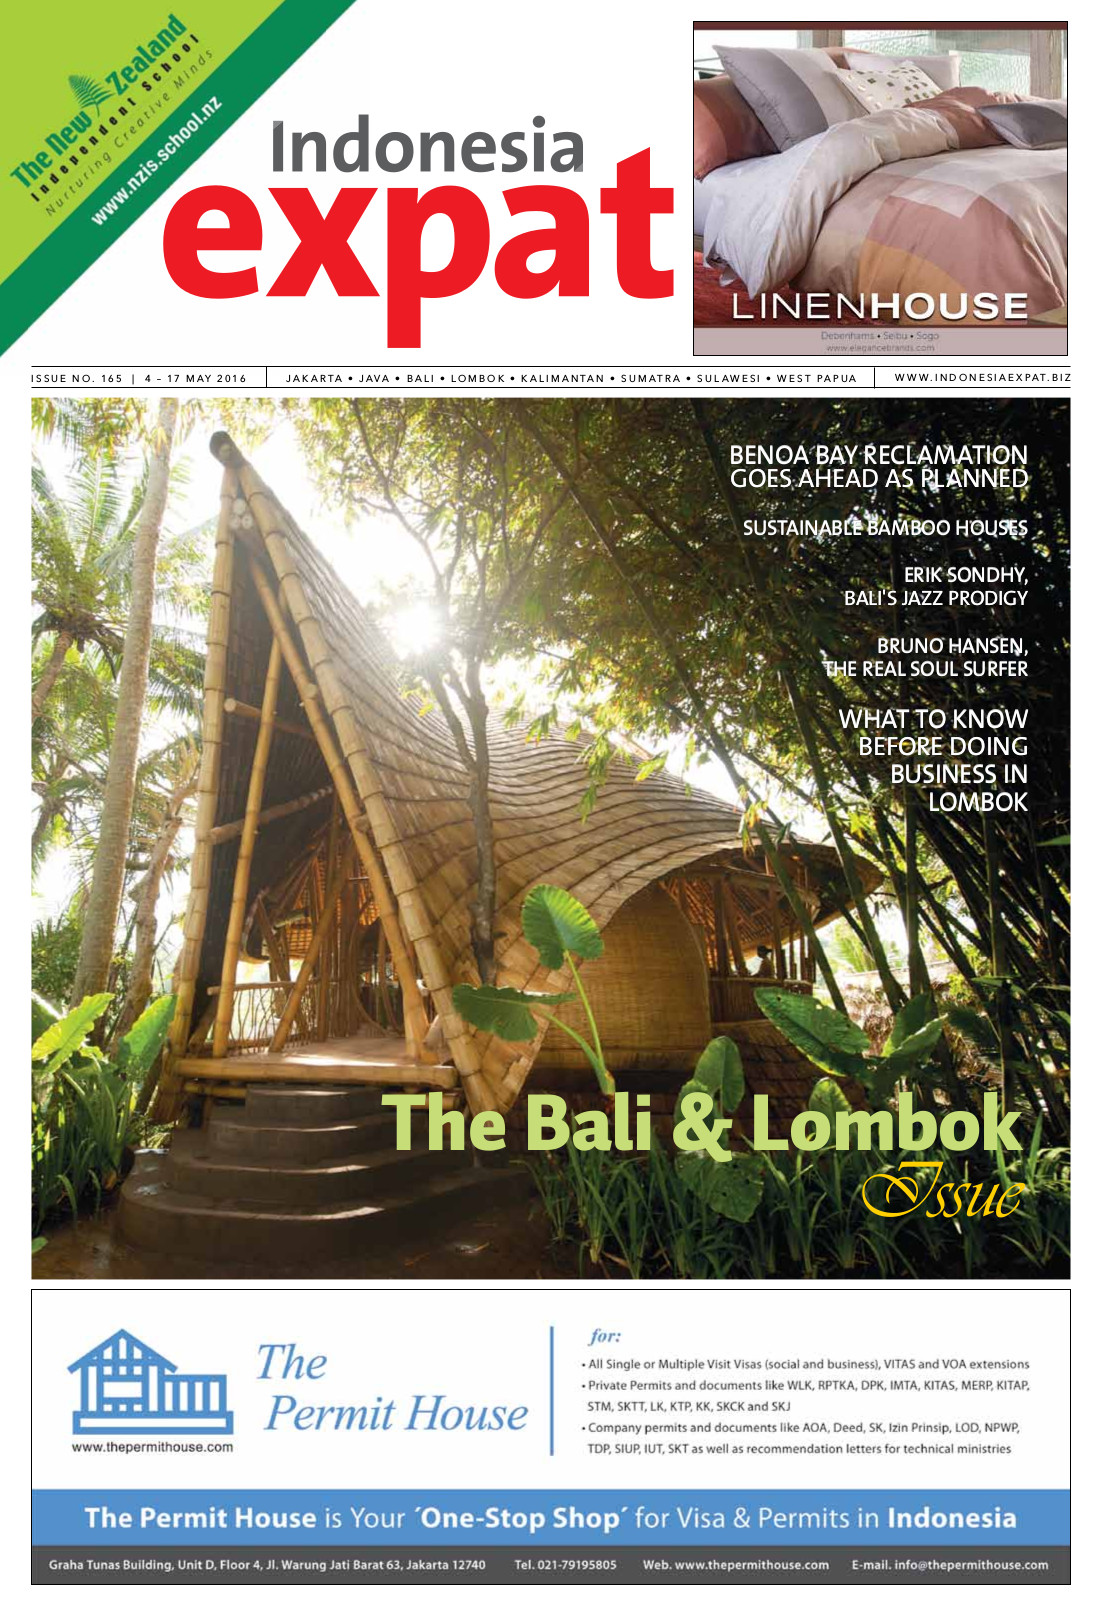 Hotel Tugu Bali, Lombok, Malang advertising at Indonesia expat Issue No. 165 4-17 May 2016